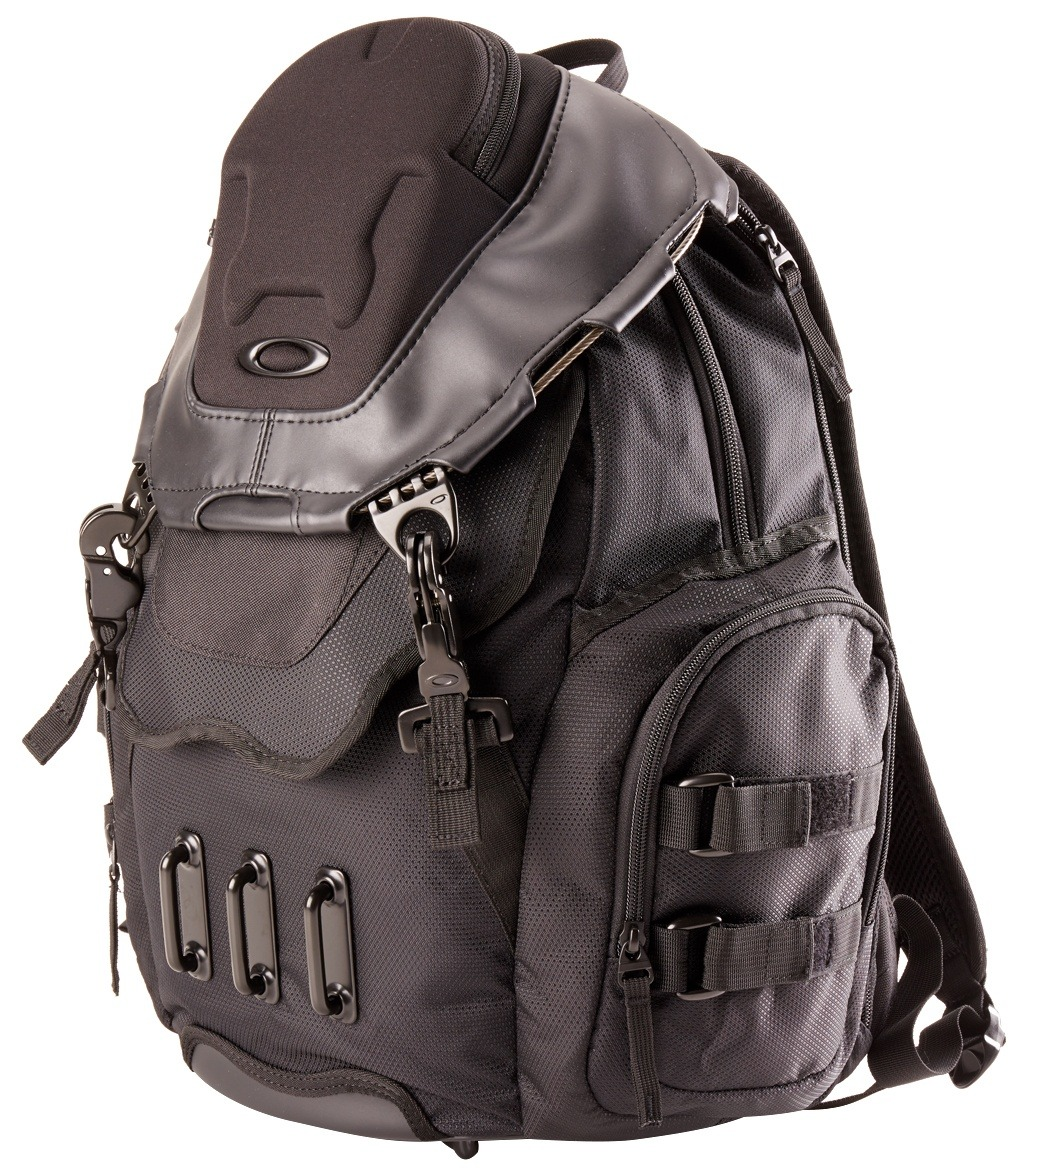 36a2e60781f Oakley Bathroom Sink Backpack at SwimOutlet.com - Free Shipping